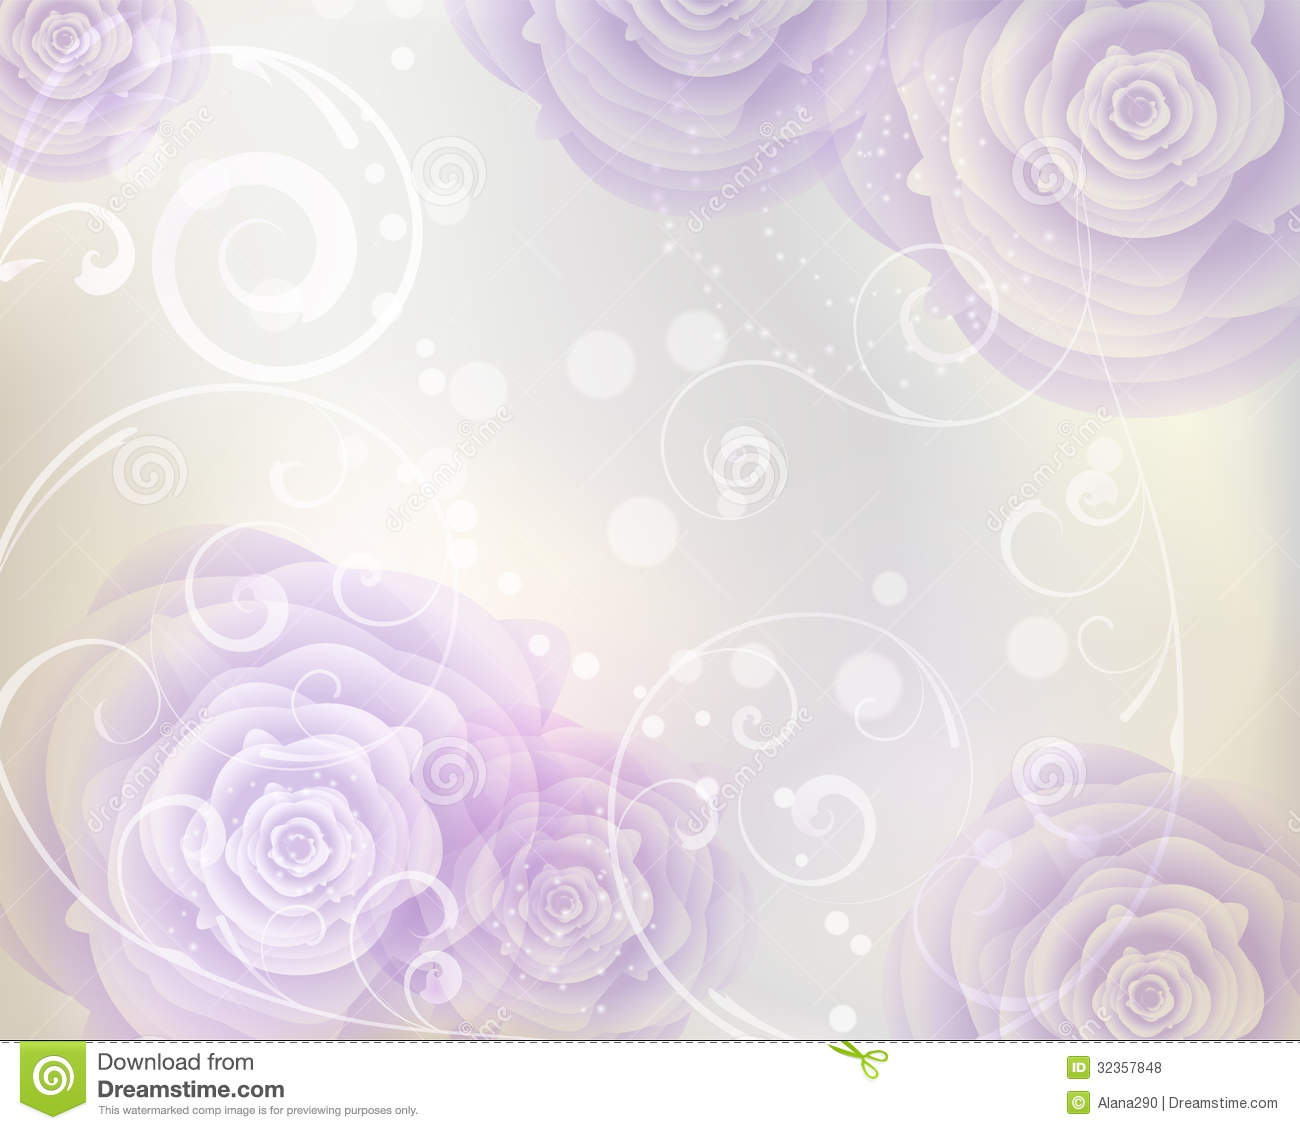 swirly roses background bouquet - photo #24